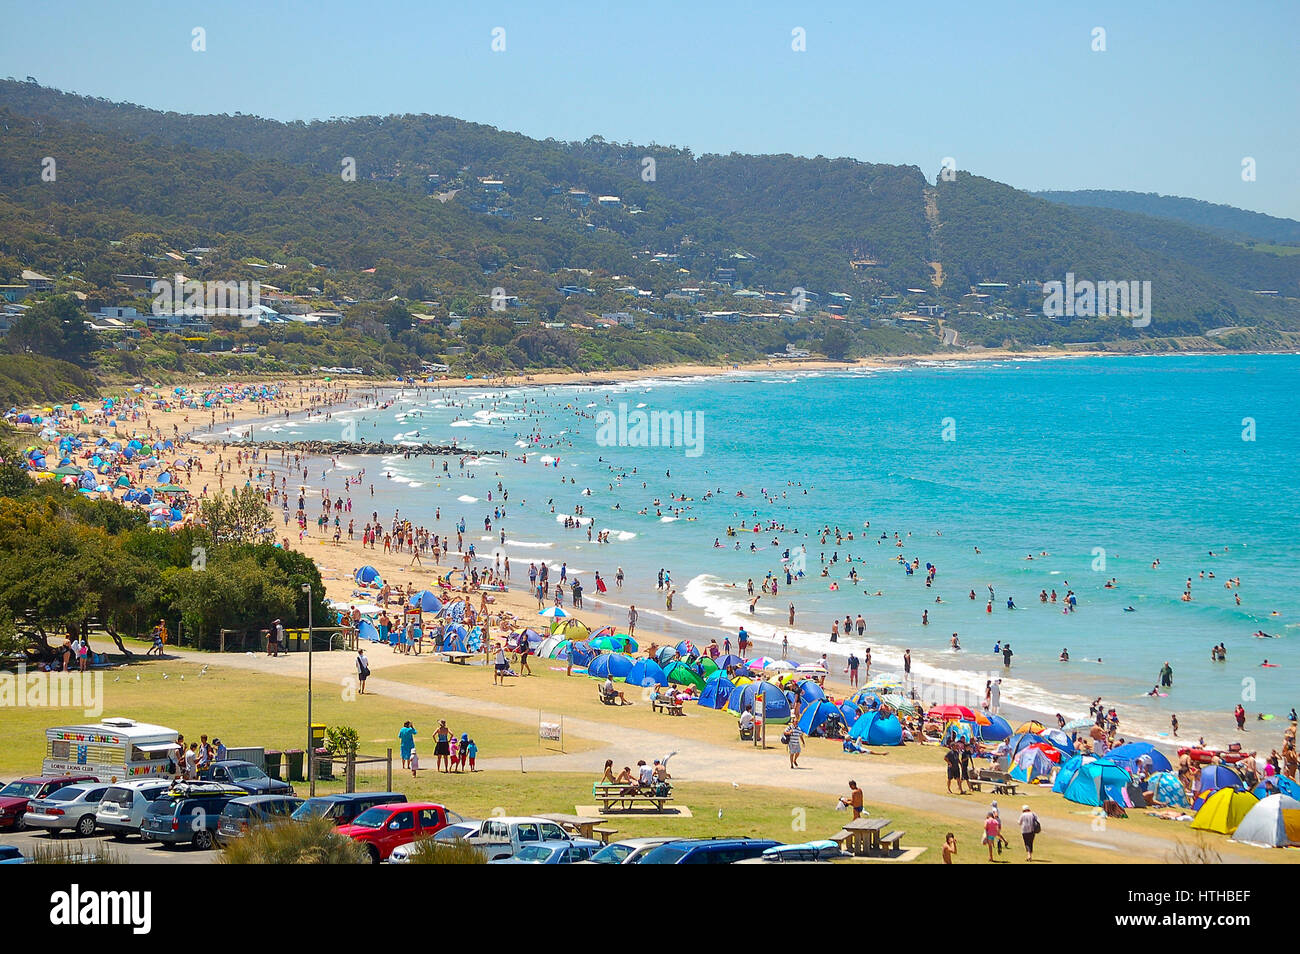 Vacationers enjoy the refreshing water in a summer heat wave on the beach of Lorne in Victoria, Australia - Stock Image